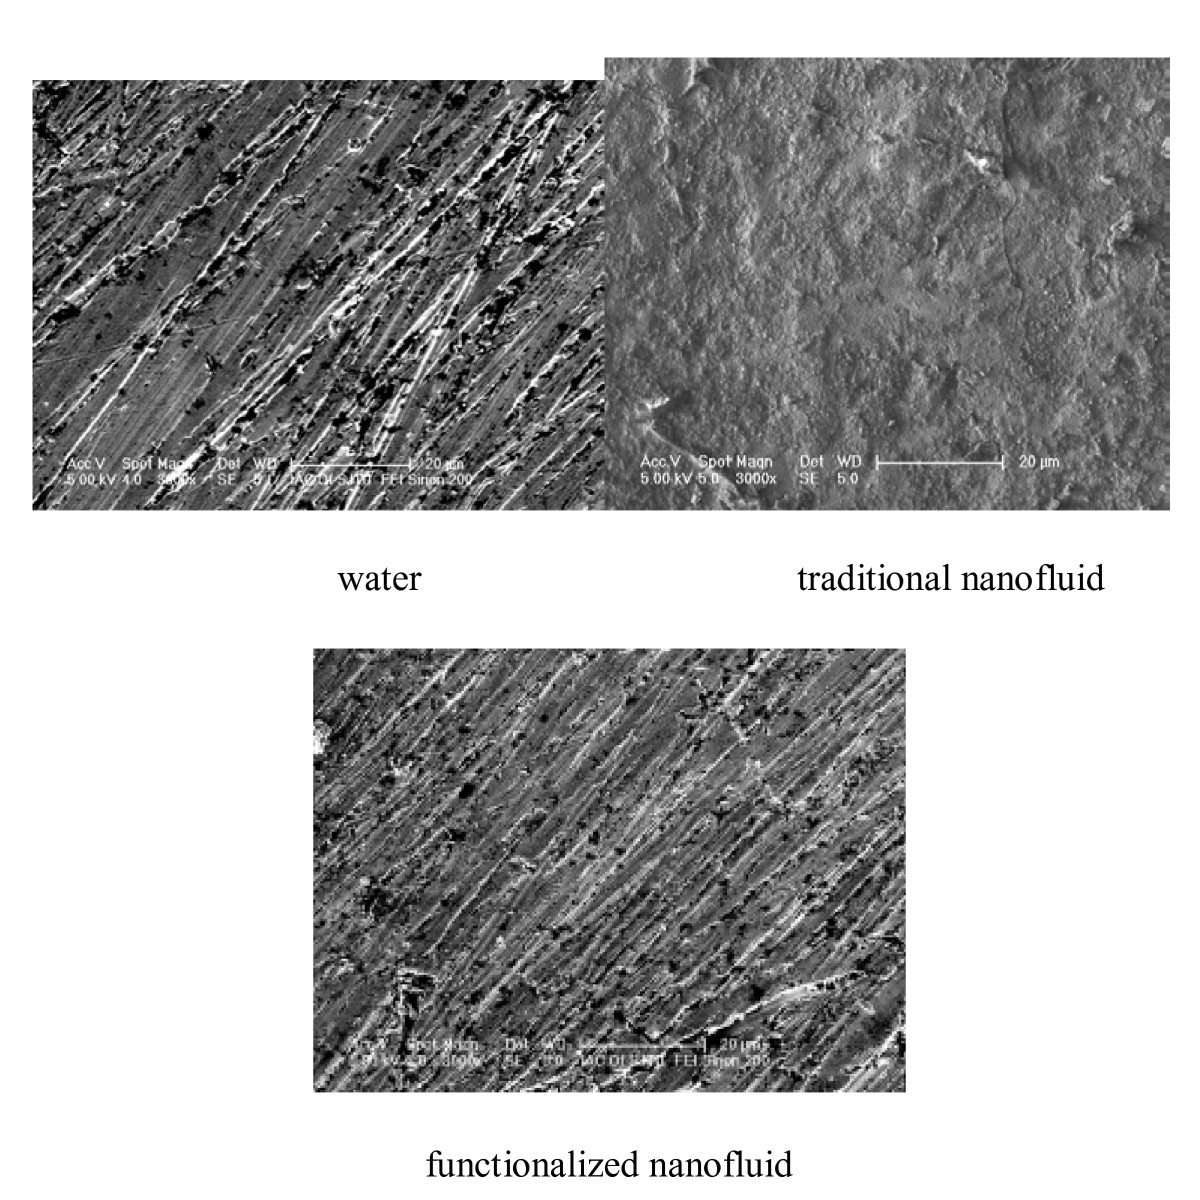 http://static-content.springer.com/image/art%3A10.1186%2F1556-276X-6-494/MediaObjects/11671_2010_Article_607_Fig4_HTML.jpg